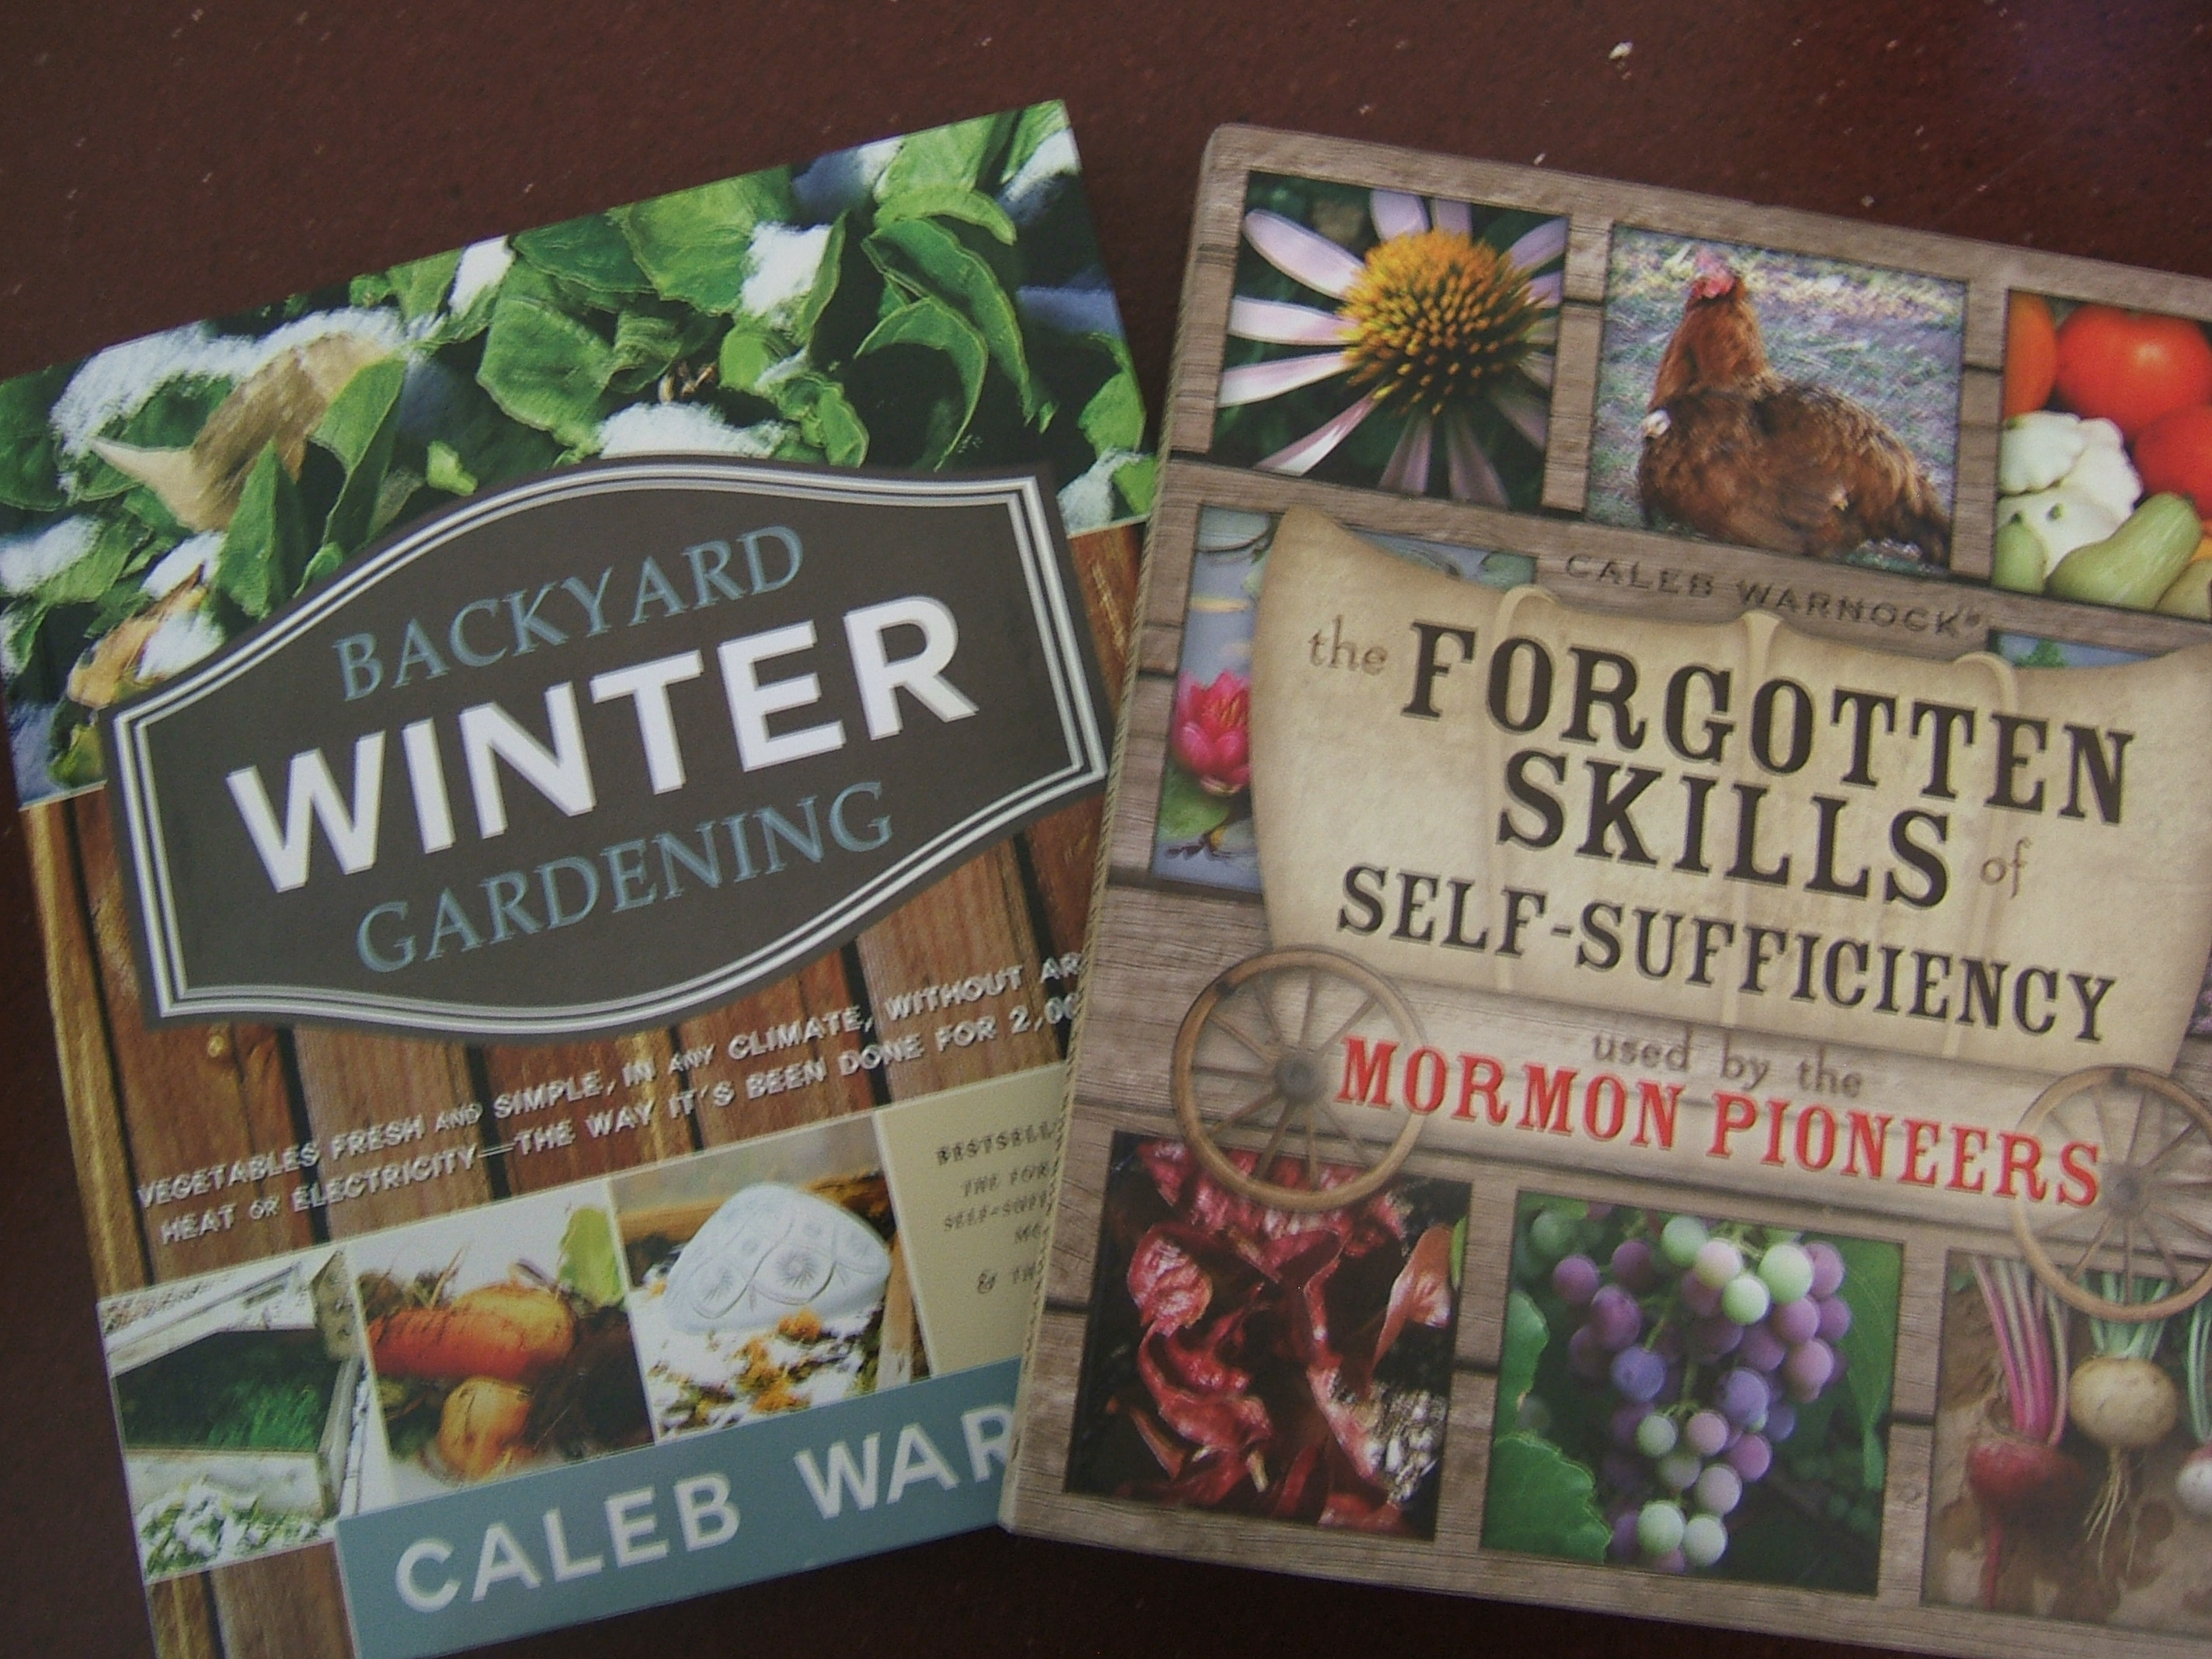 winter gardening with caleb warnock feed your family year round